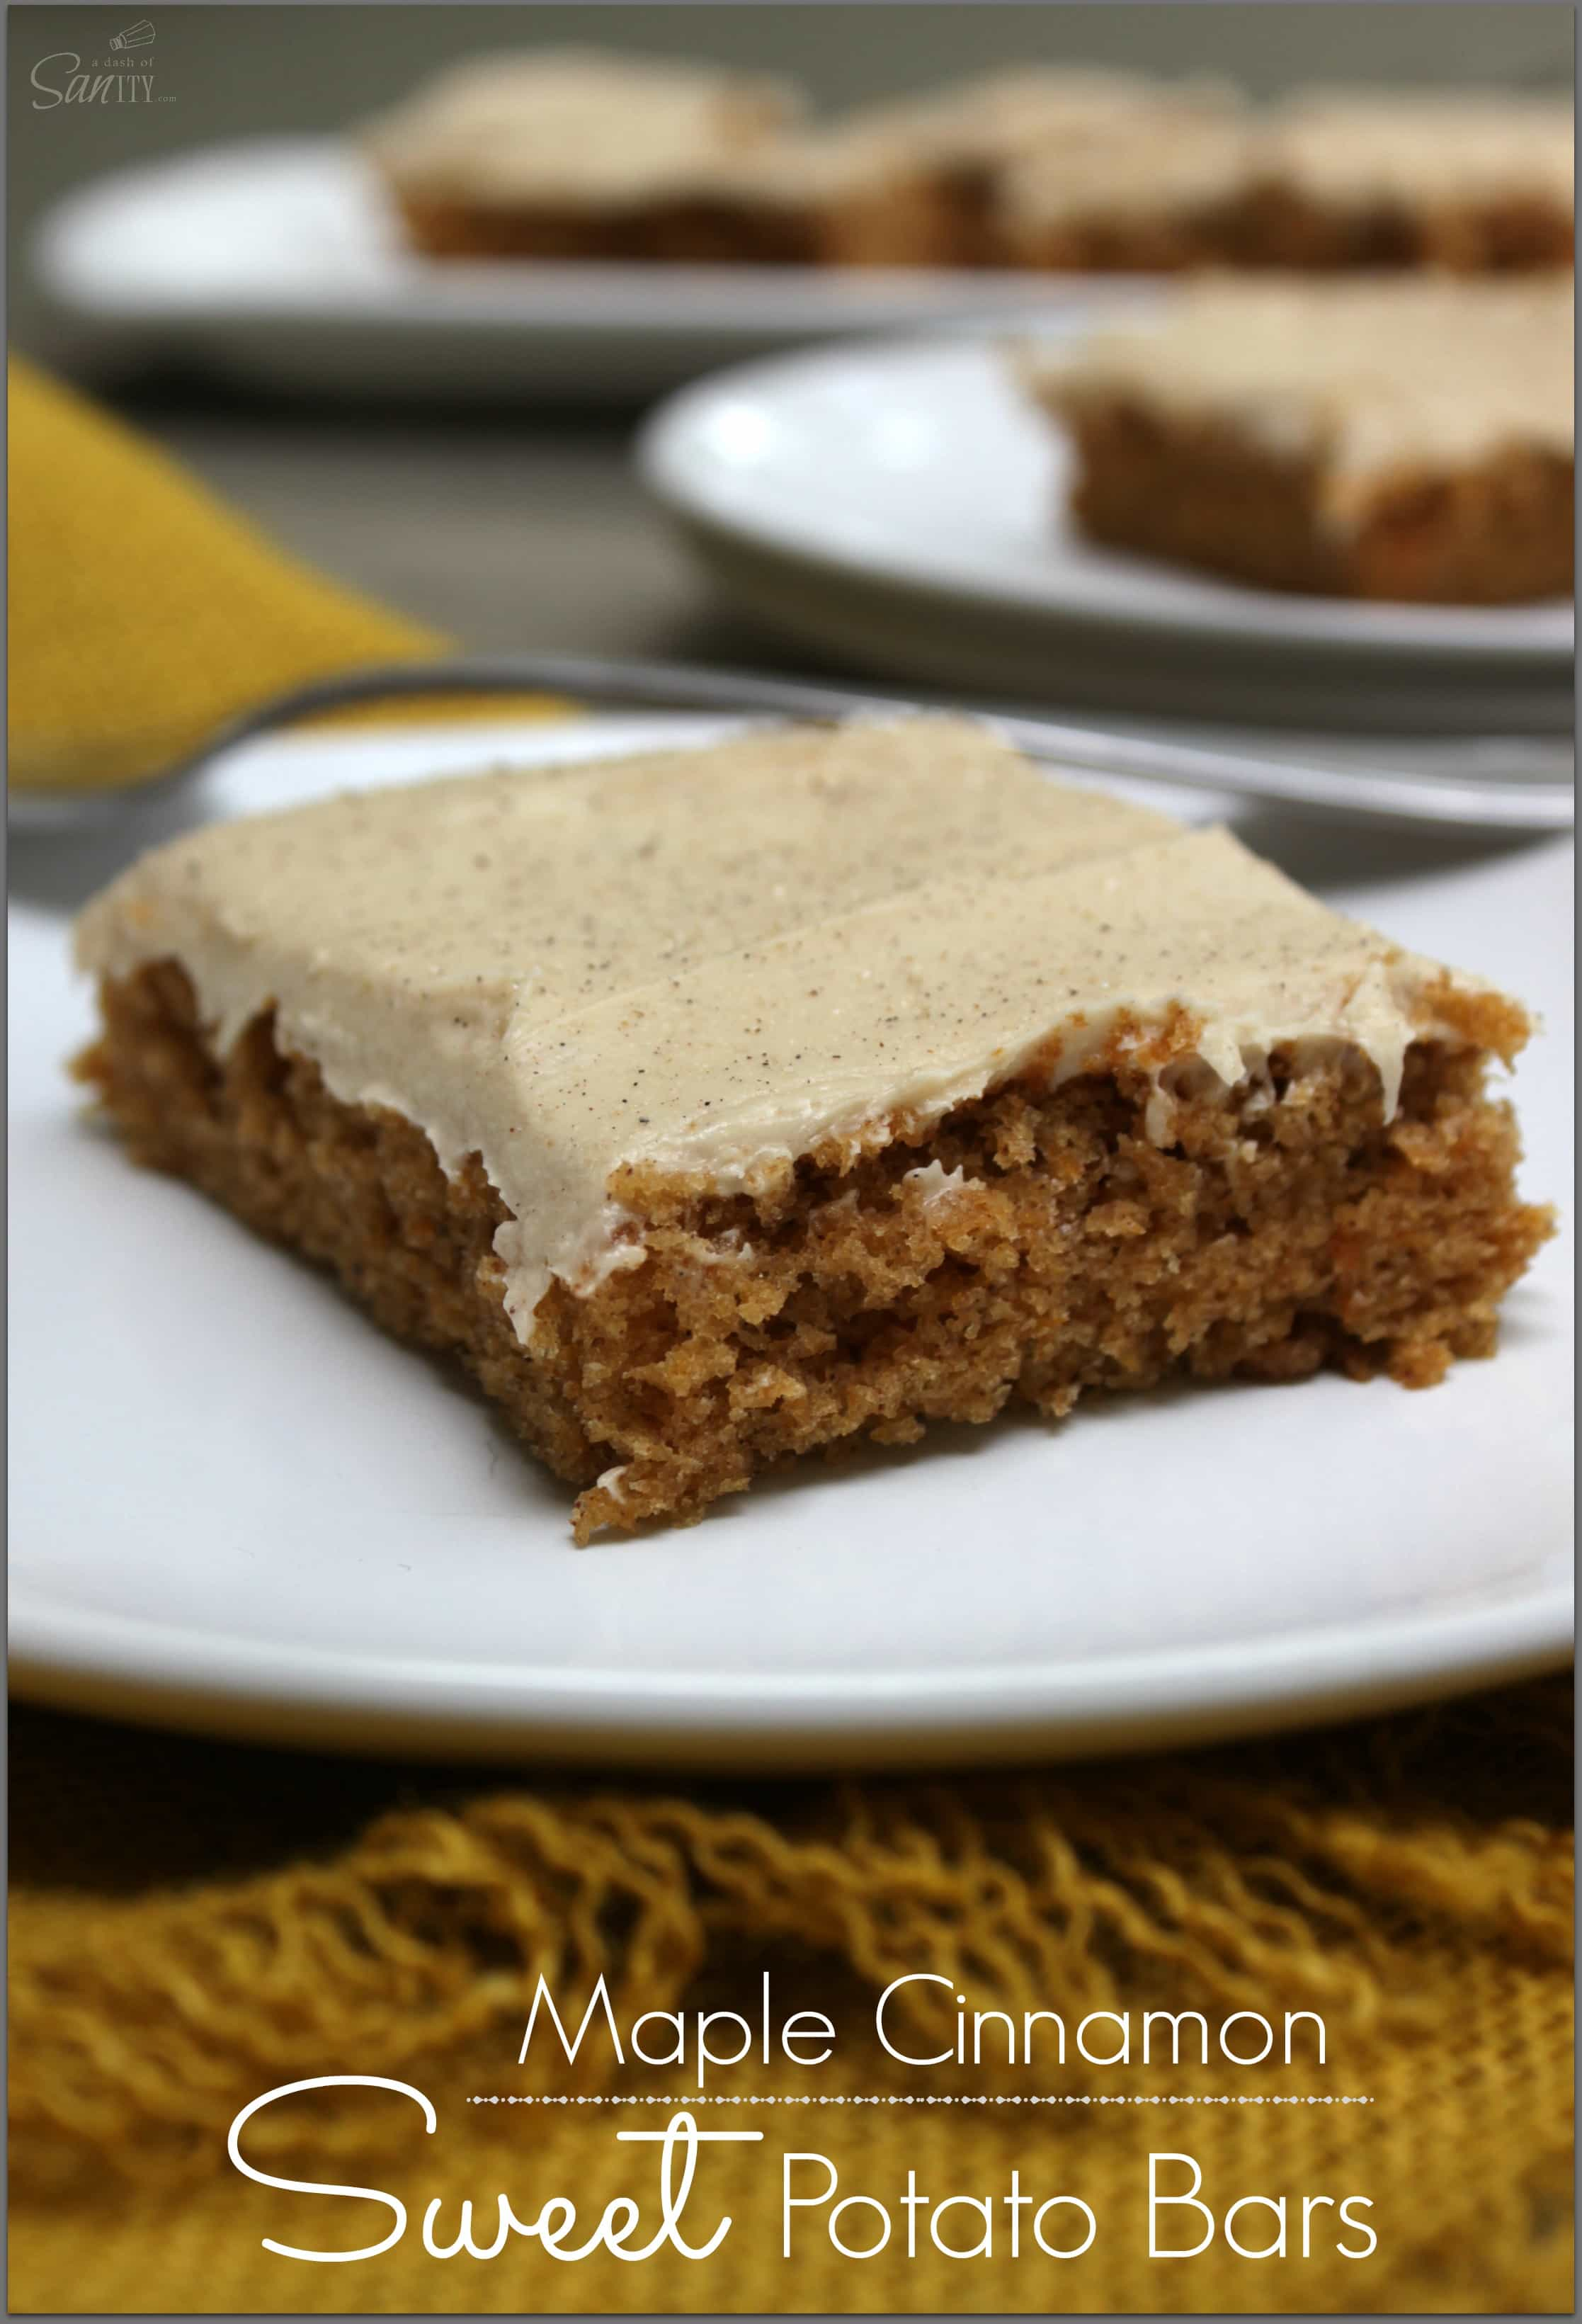 Maple Cinnamon Sweet Potato Bars